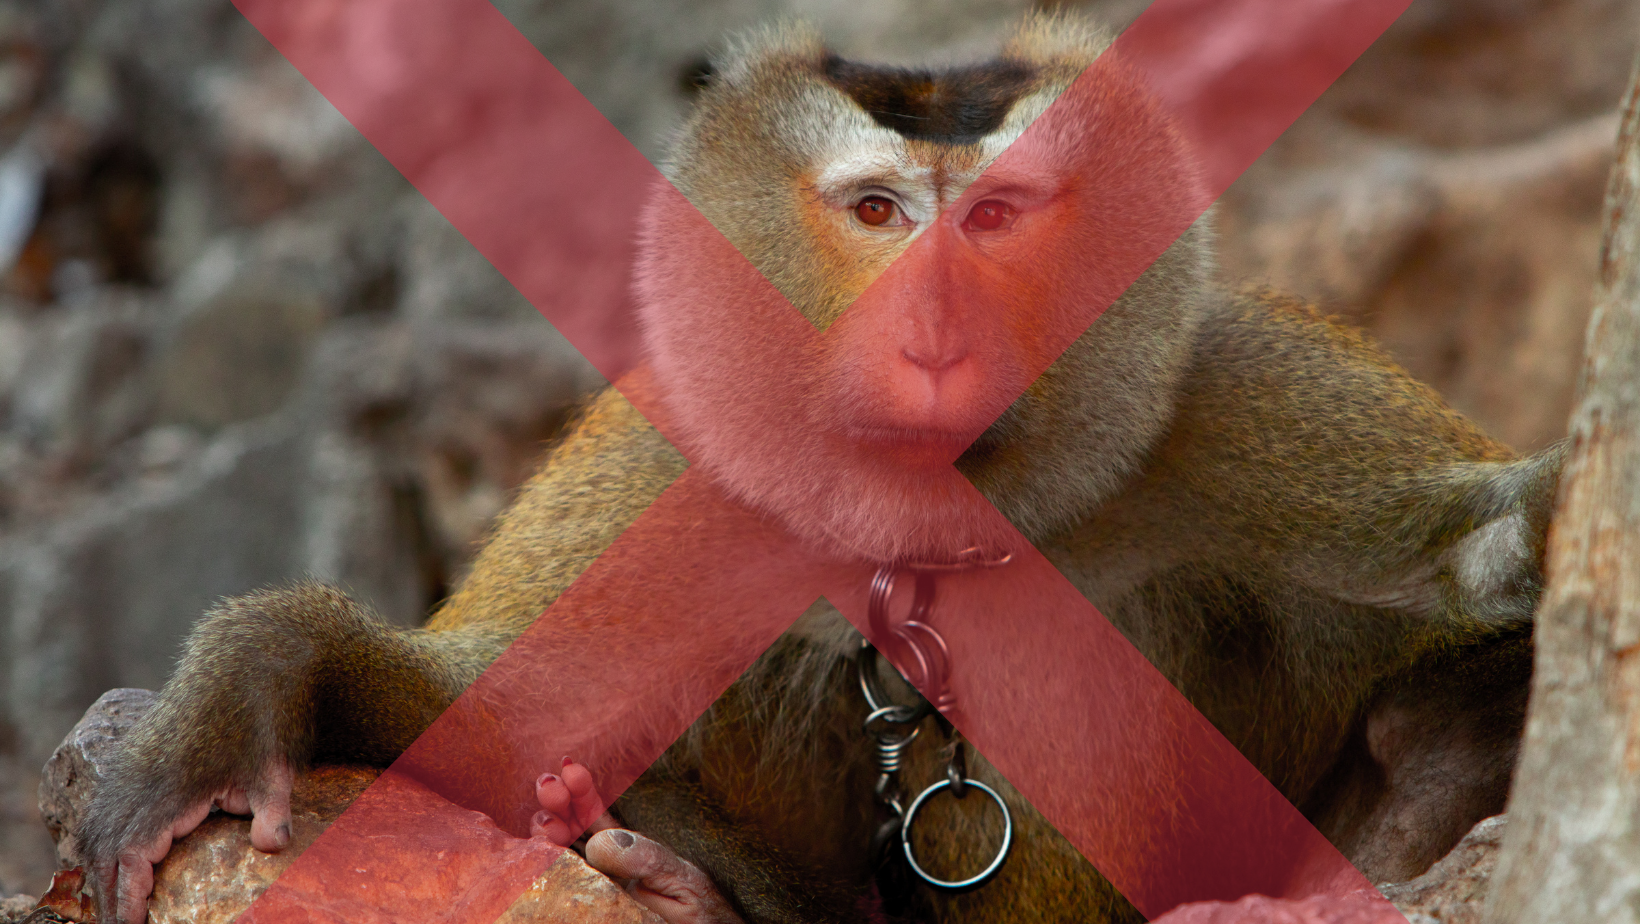 Chained monkey looking at the camera with a red x through the photo